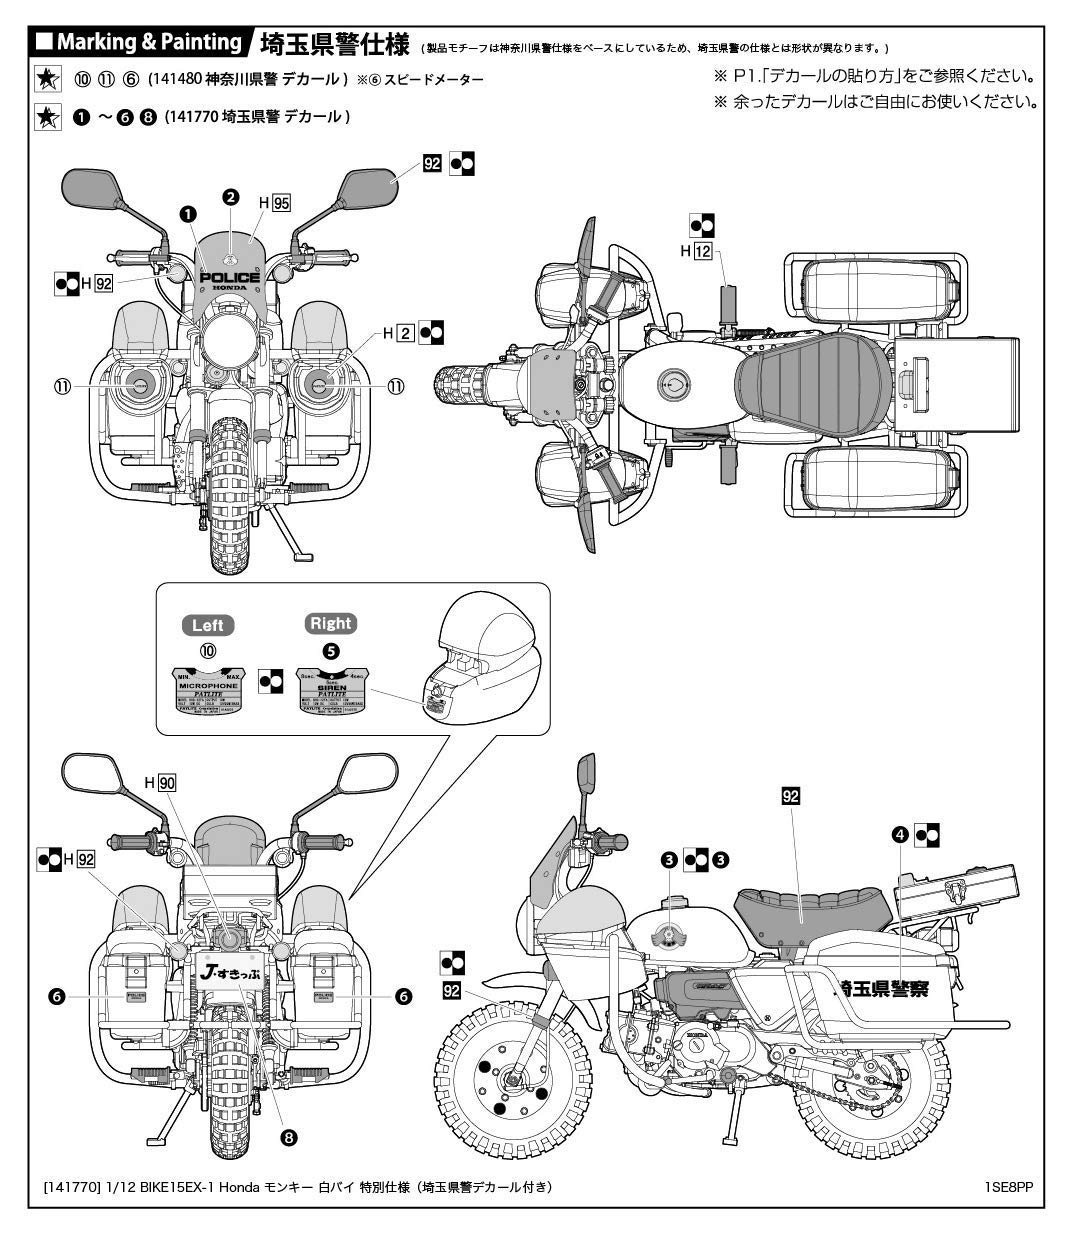 2018 58 Toyland Hobby Modeling Magazine Wiring Diagram Jupiter Z1 A Pretty Monkeys White Shit Comes With Saitama Prefectural Police Decal Coming